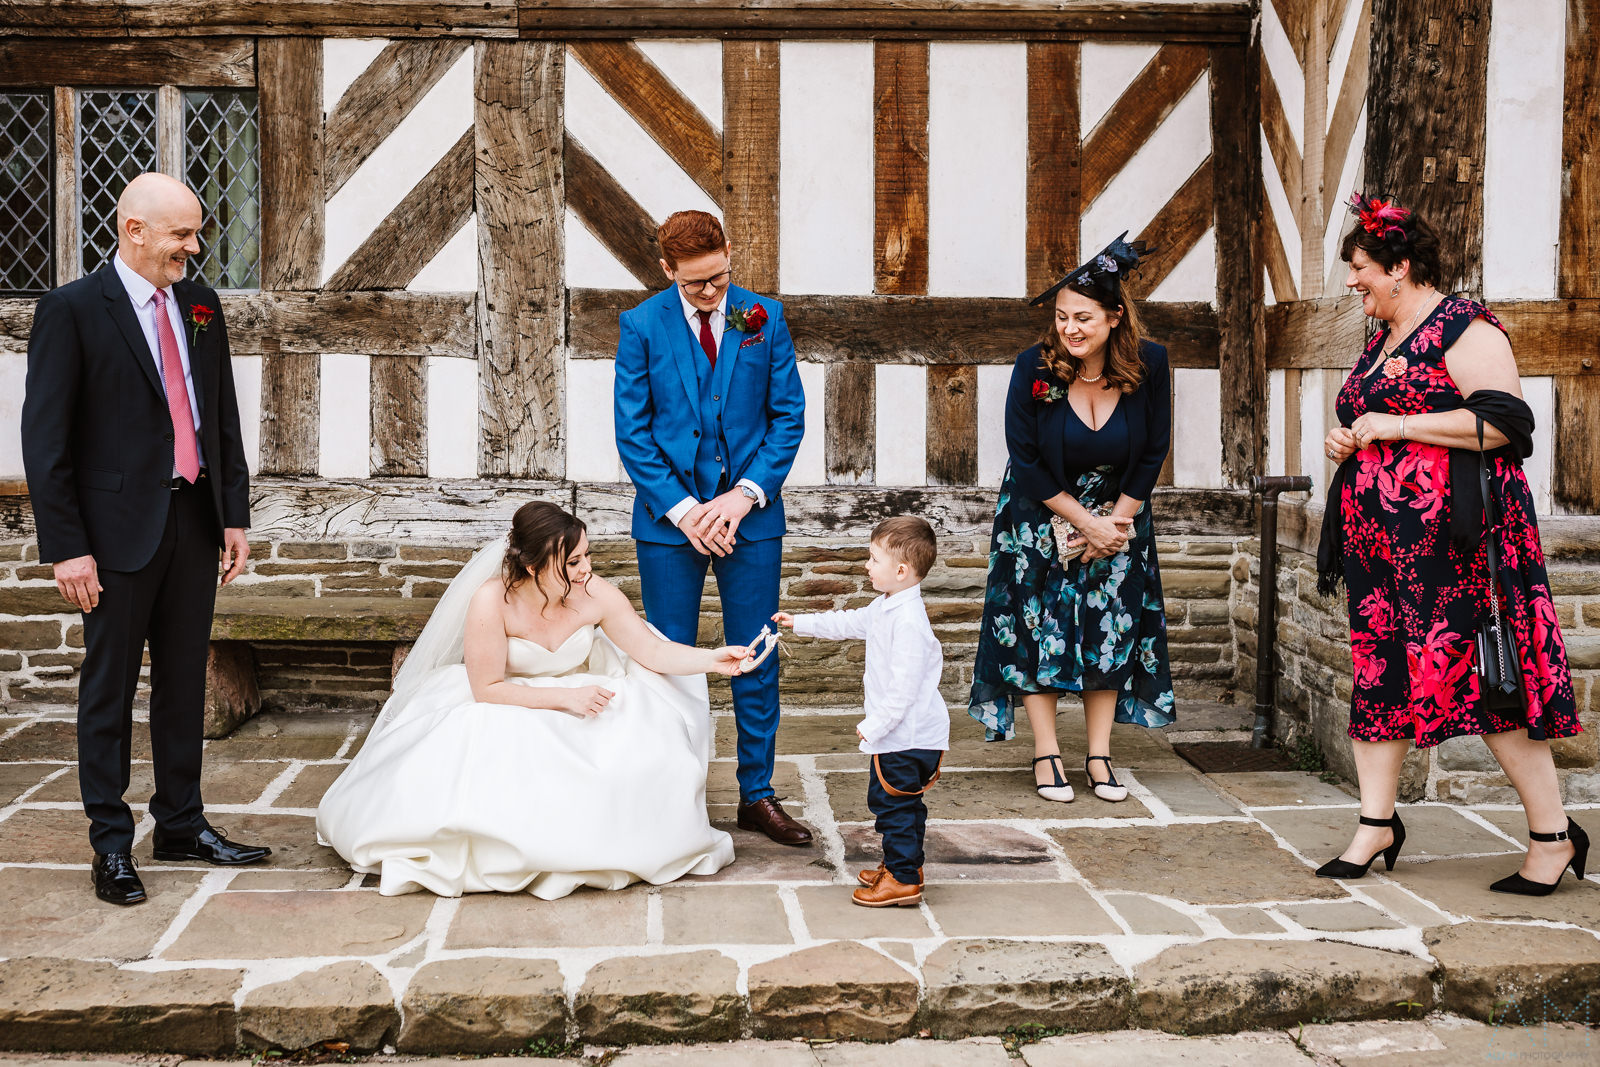 Little boy passes the bride a good luck charm